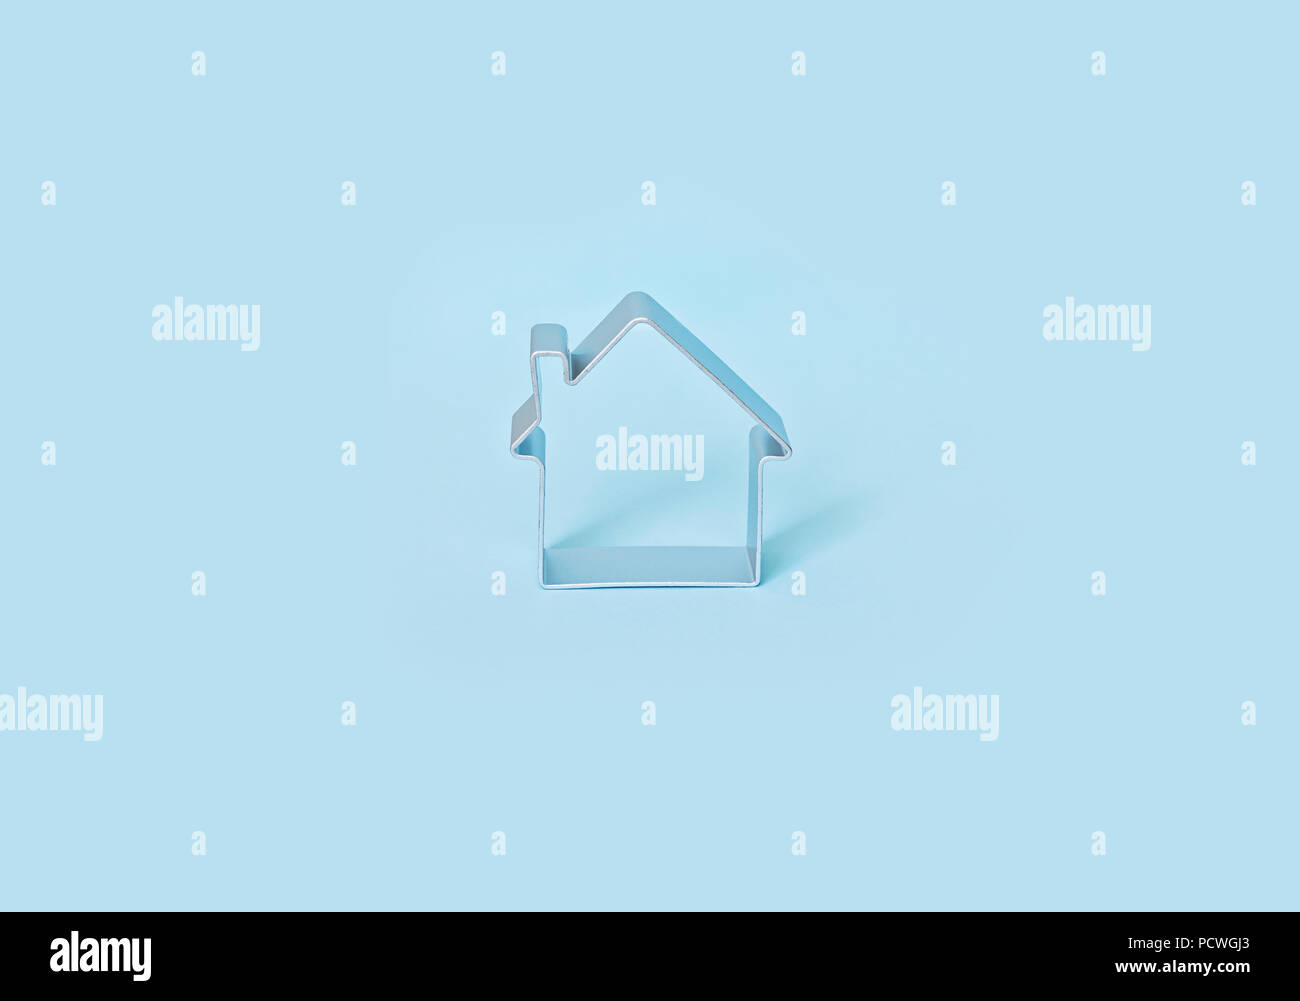 Simple shape of small house isolated on blue background. Insurance and rental housing concept Stock Photo